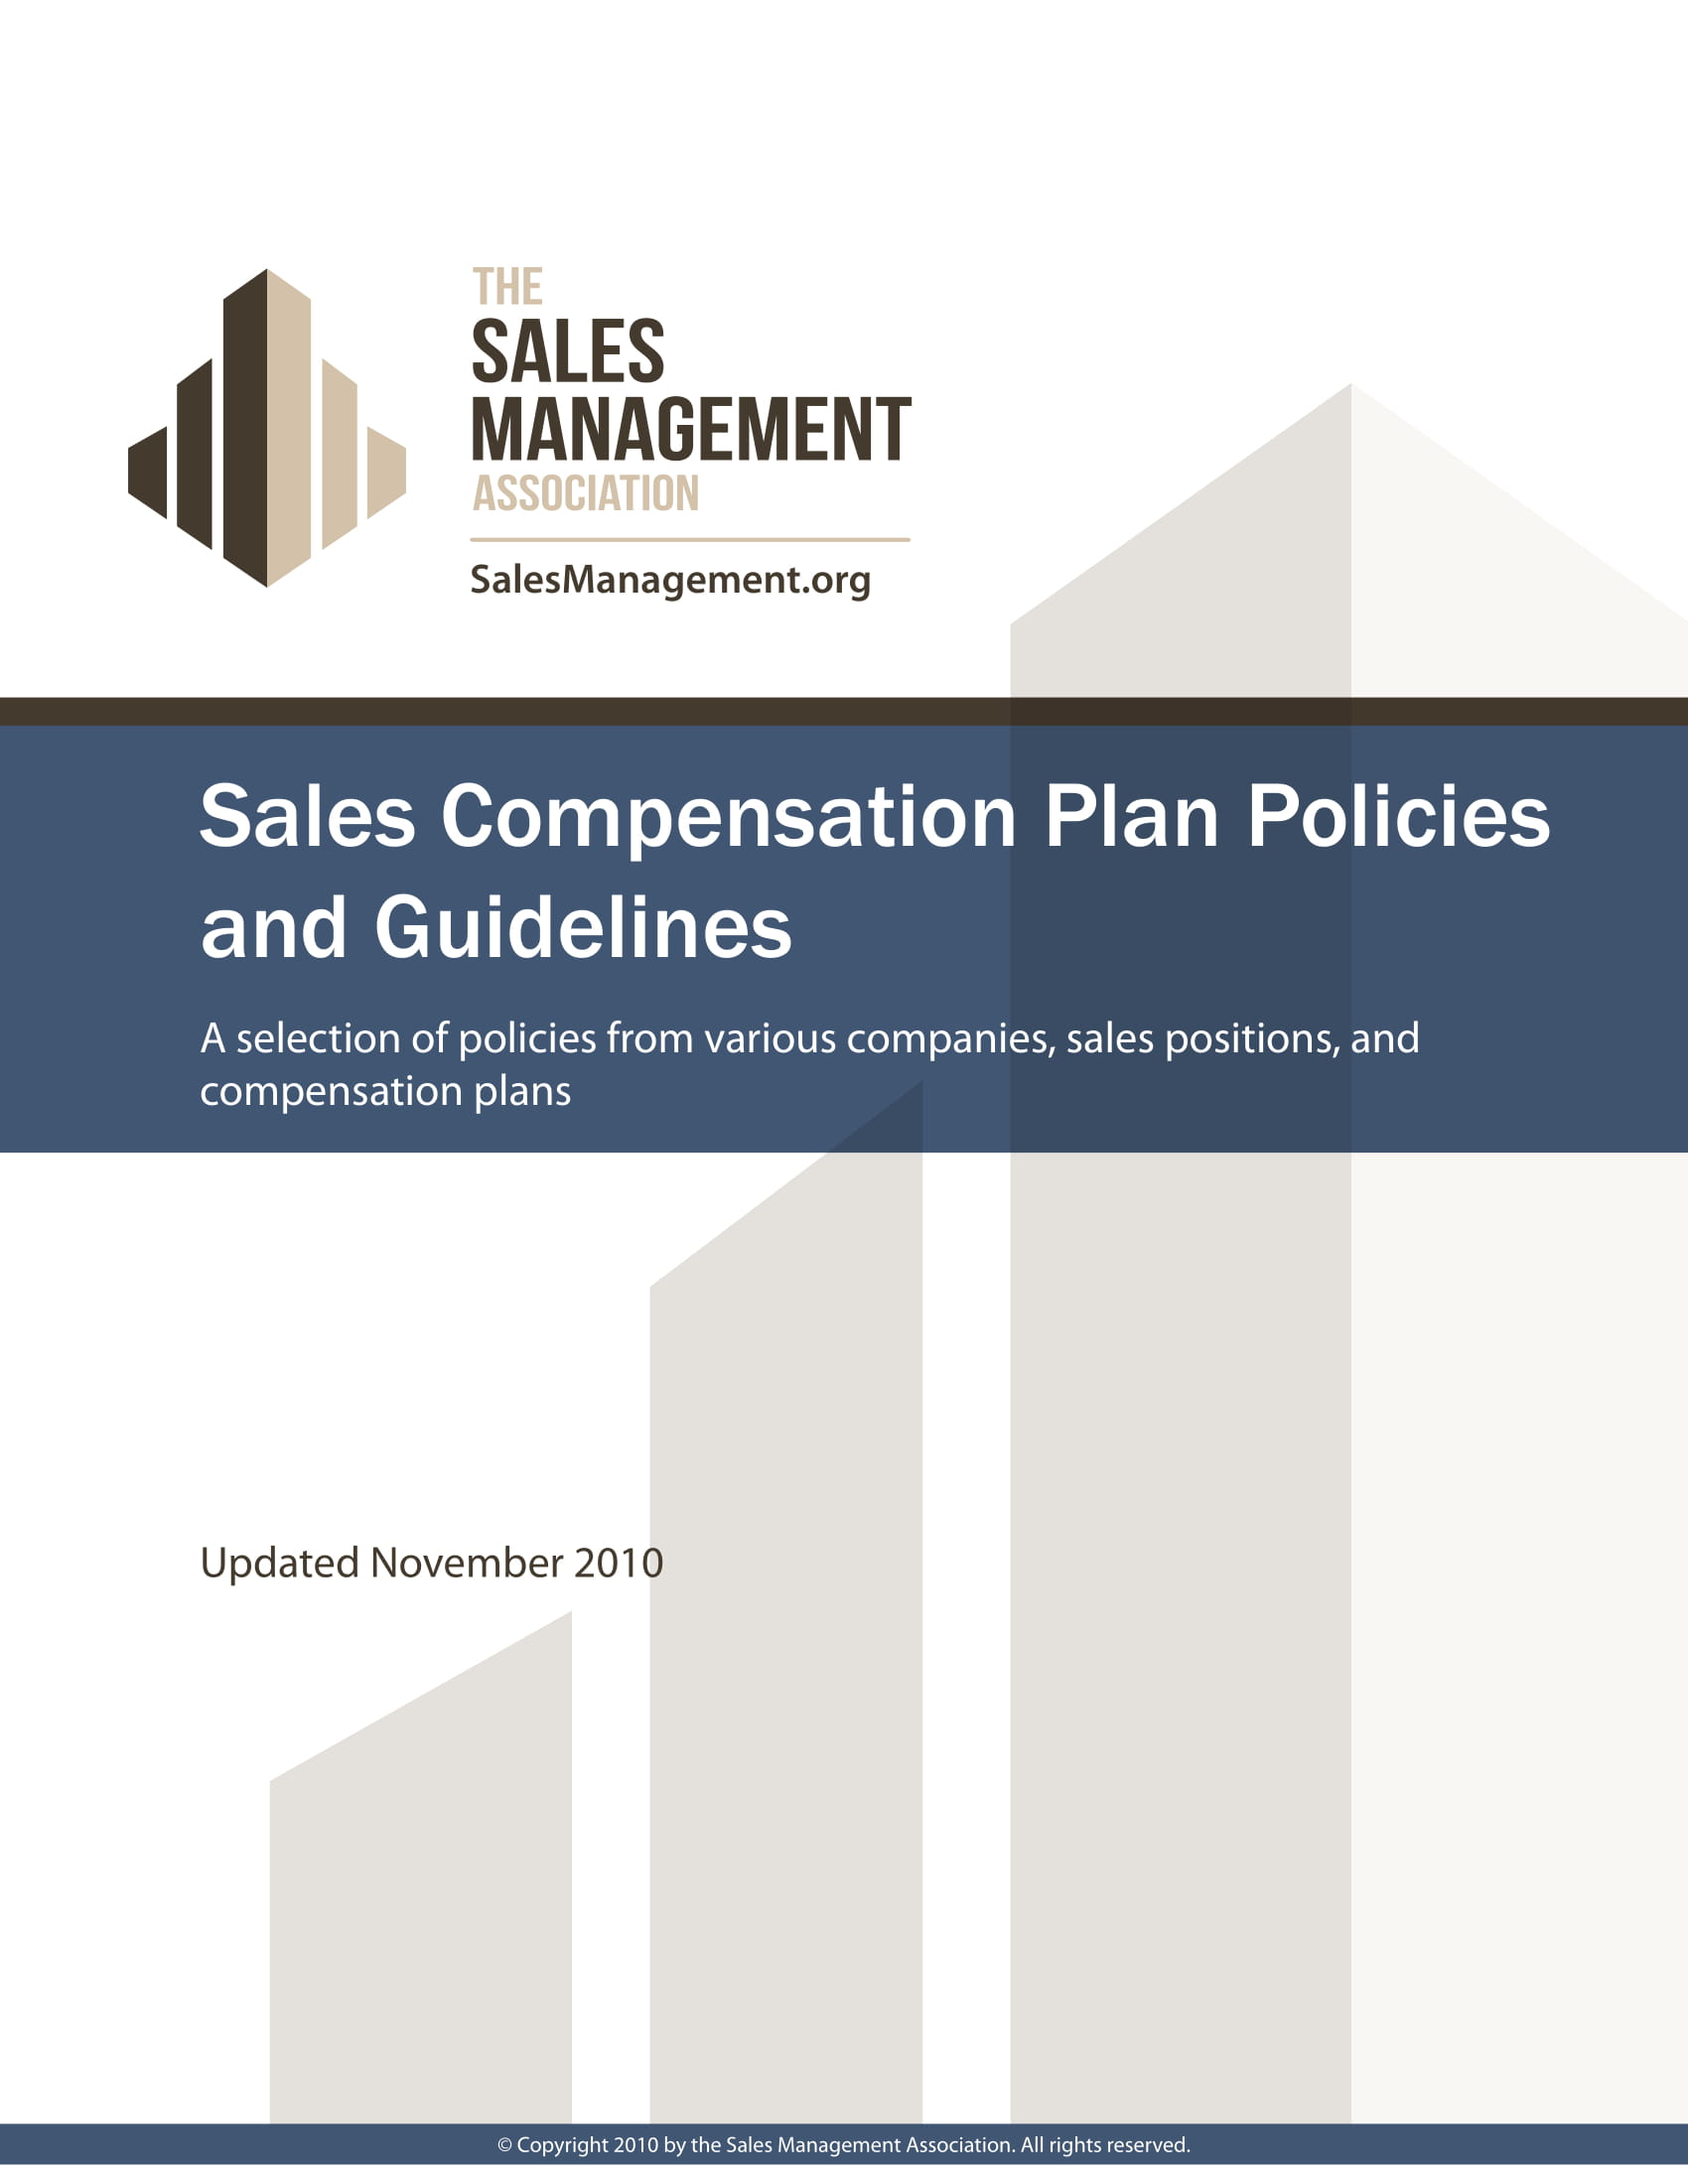 sales compensation plan format and content guidelines example 1